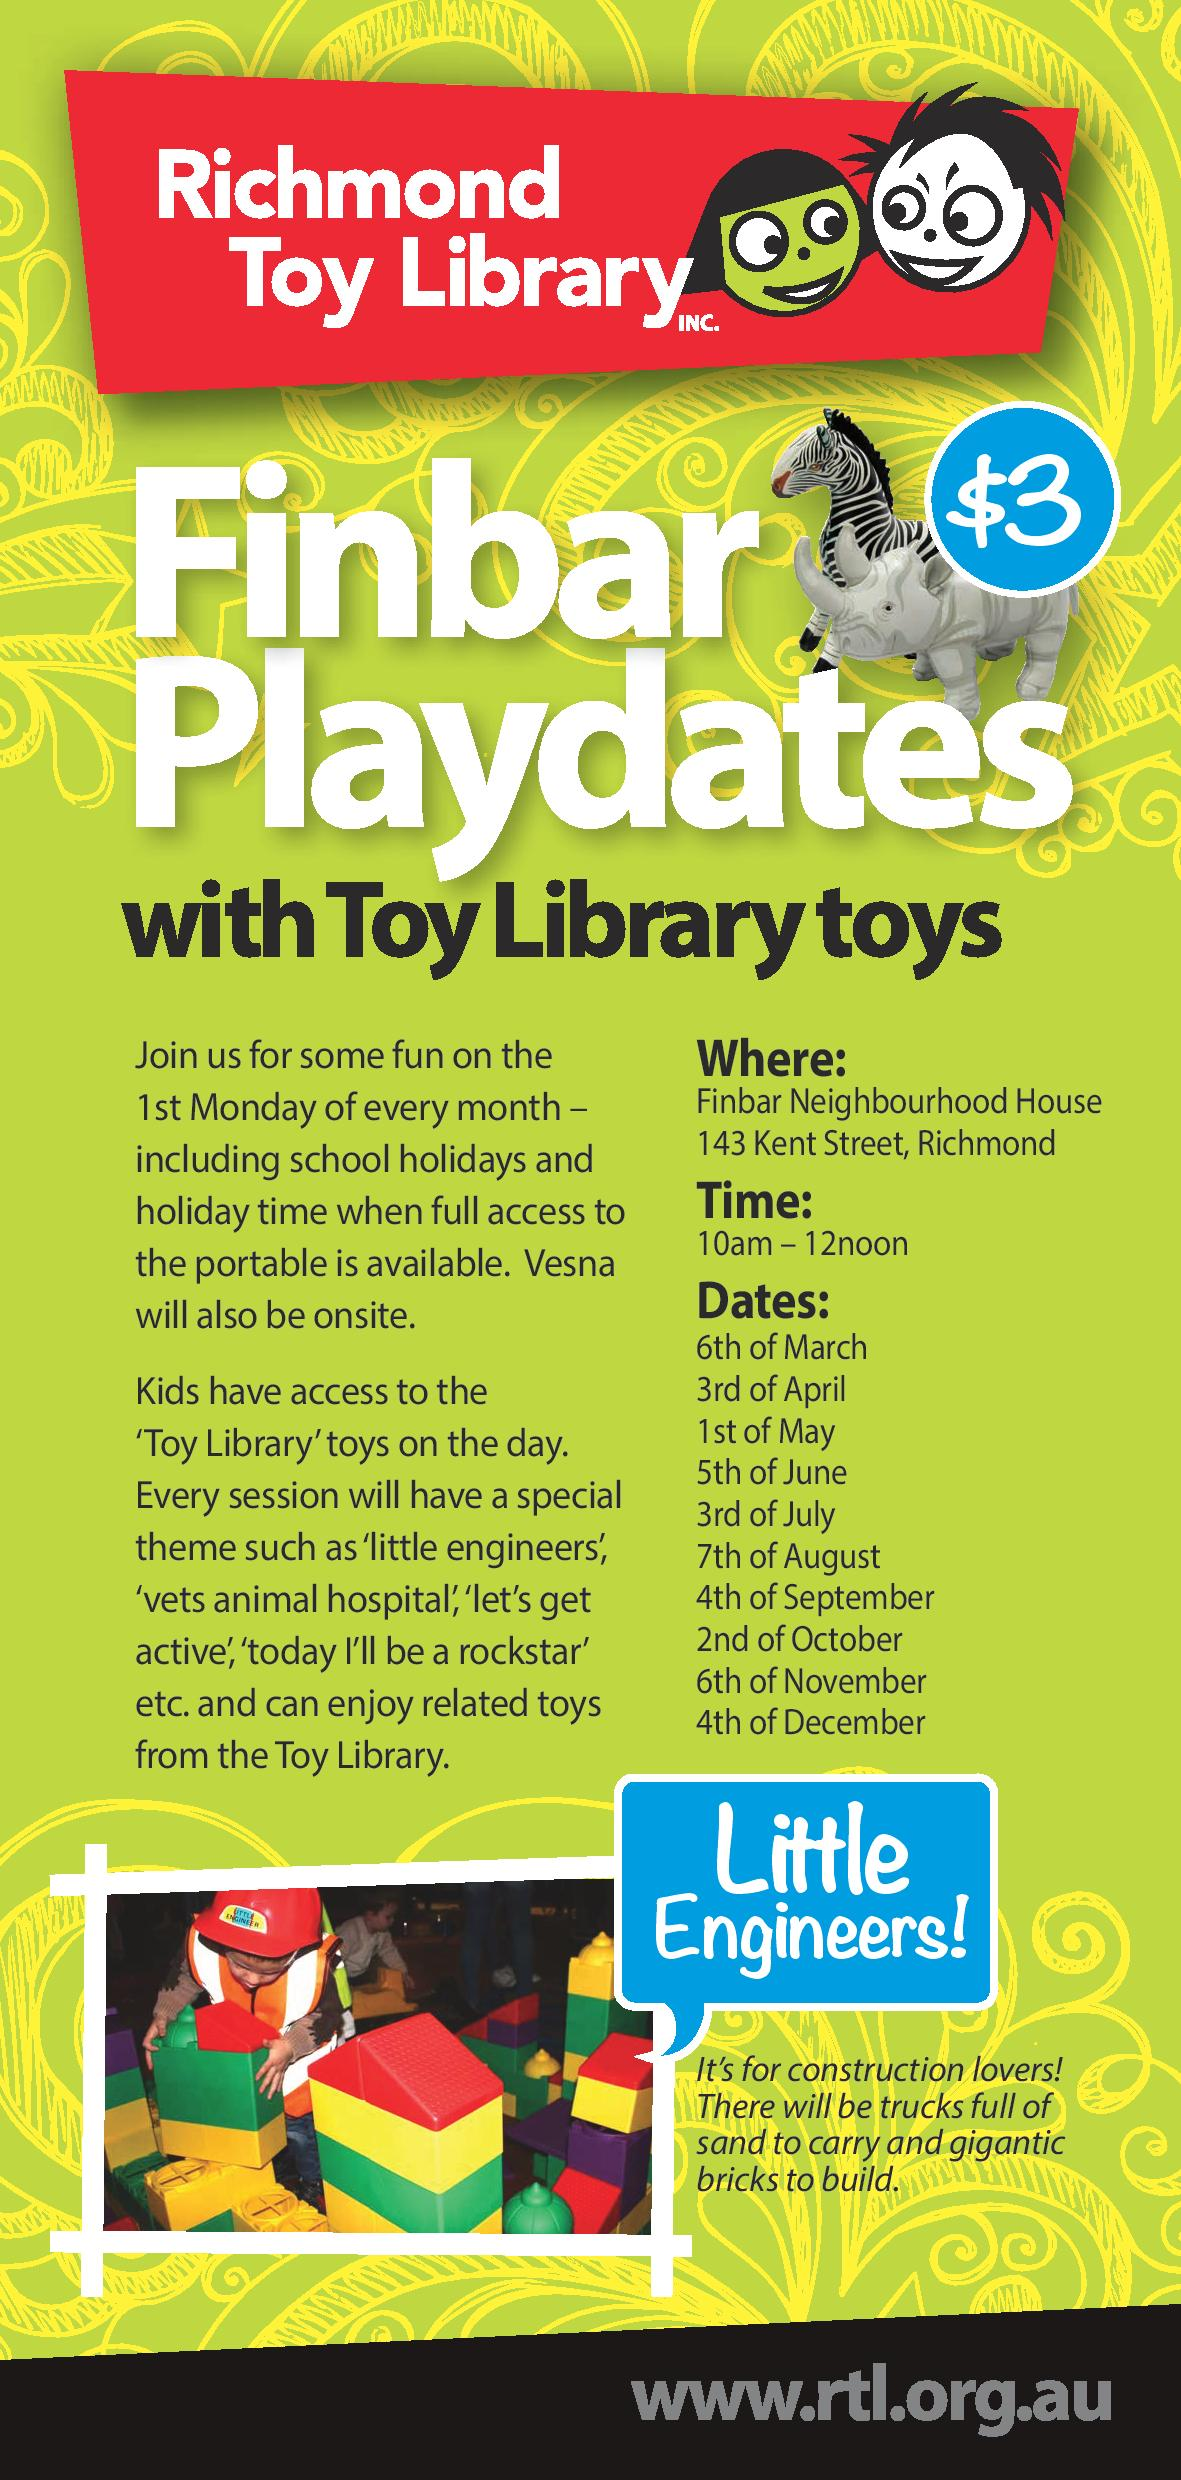 Toylibrary-Playdates